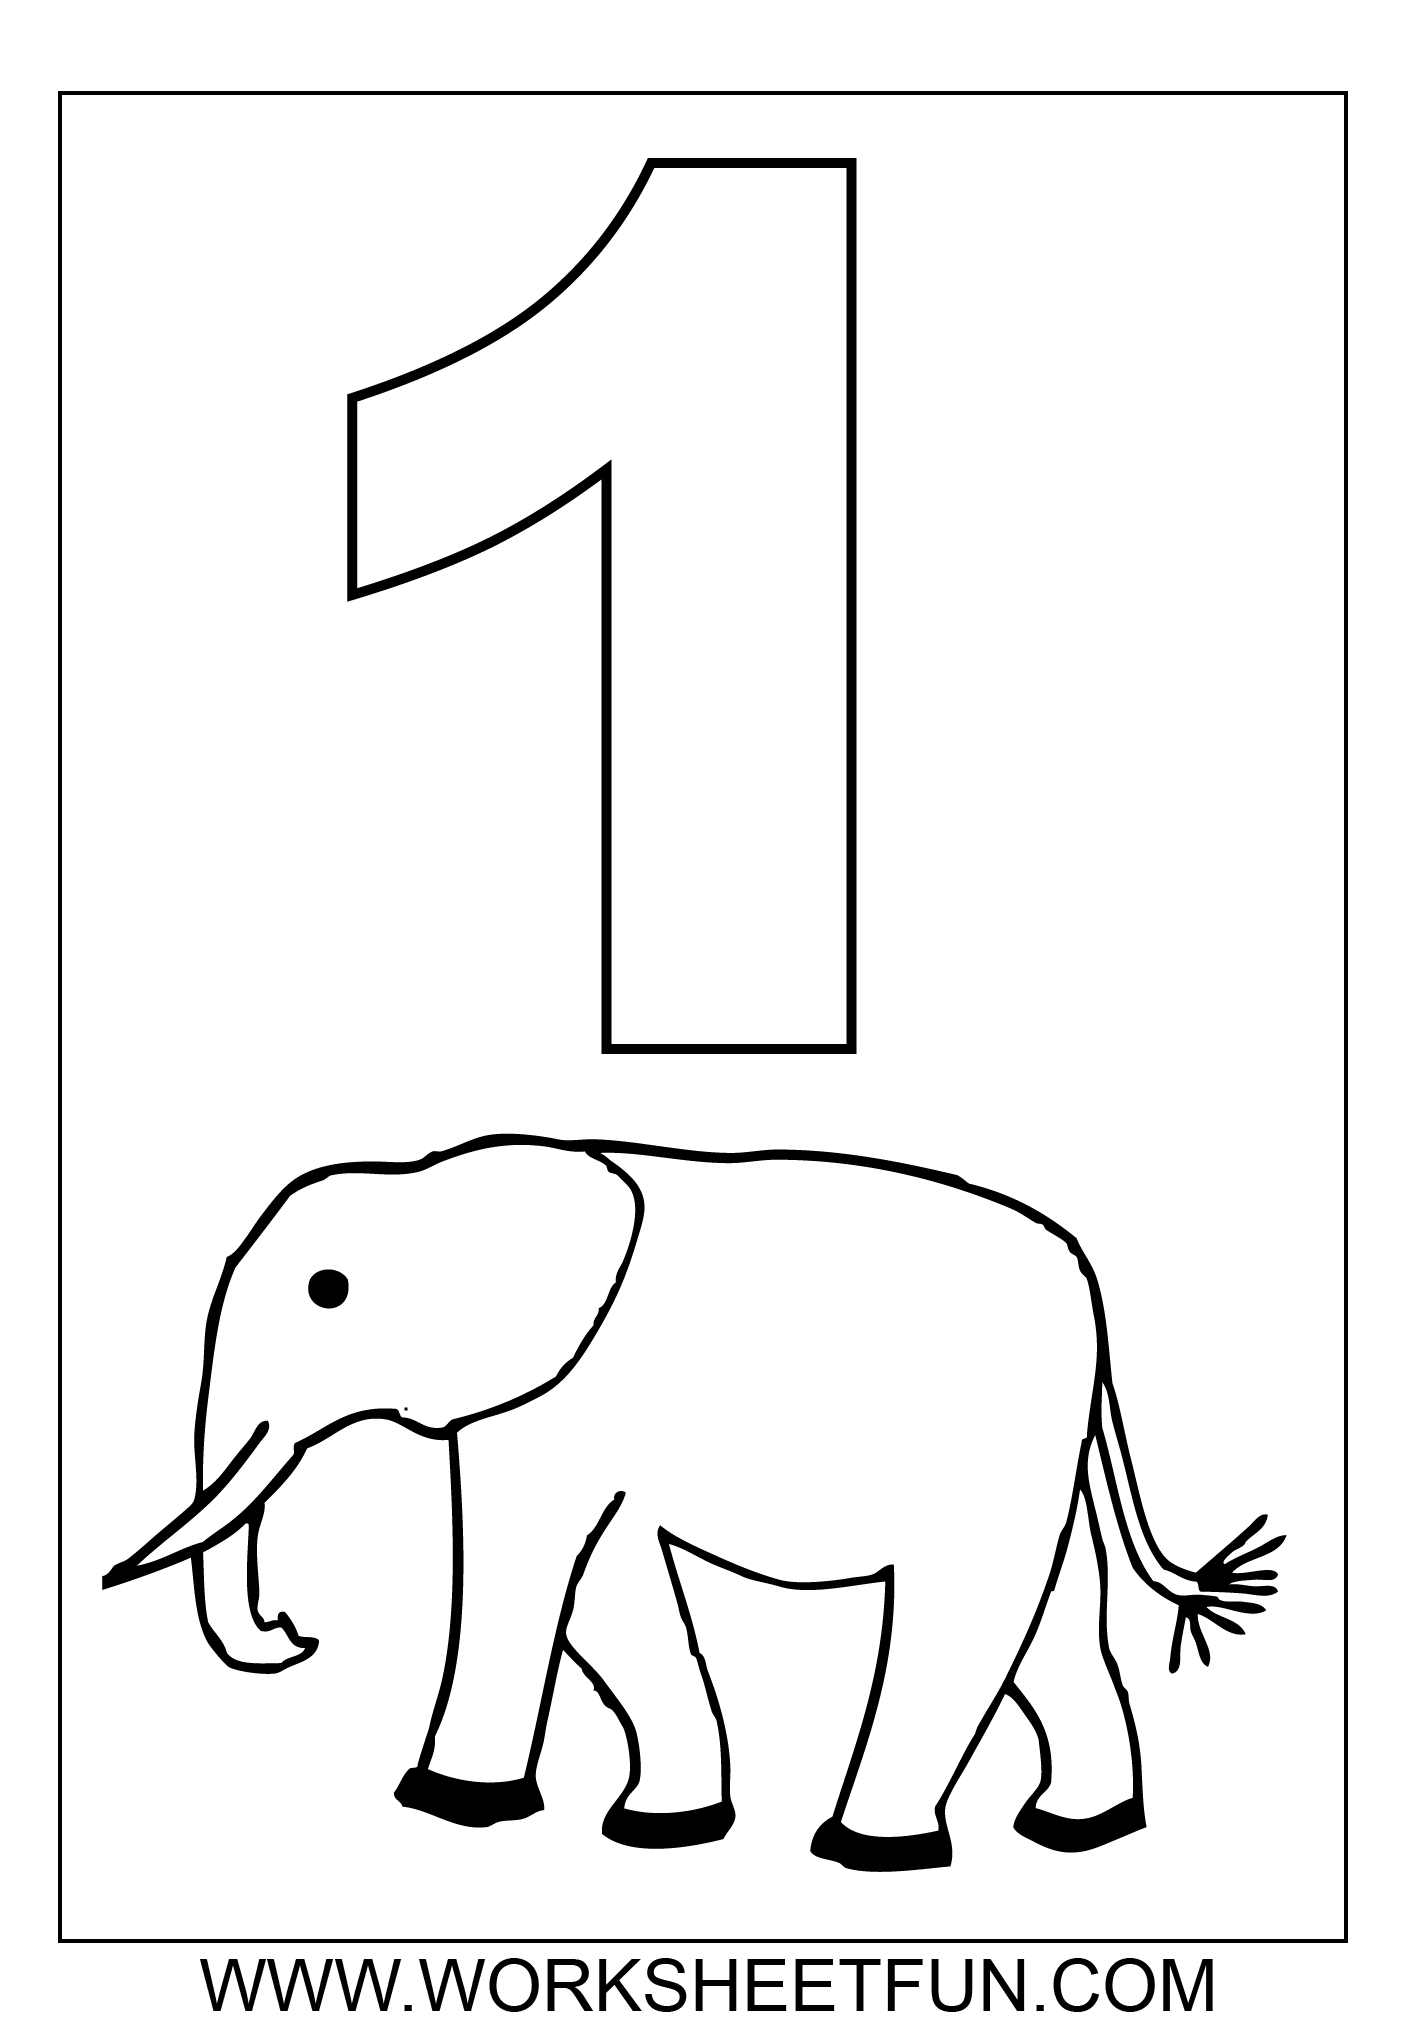 21 Number Coloring Pages 1 10 Compilation Free Coloring Pages Part 2